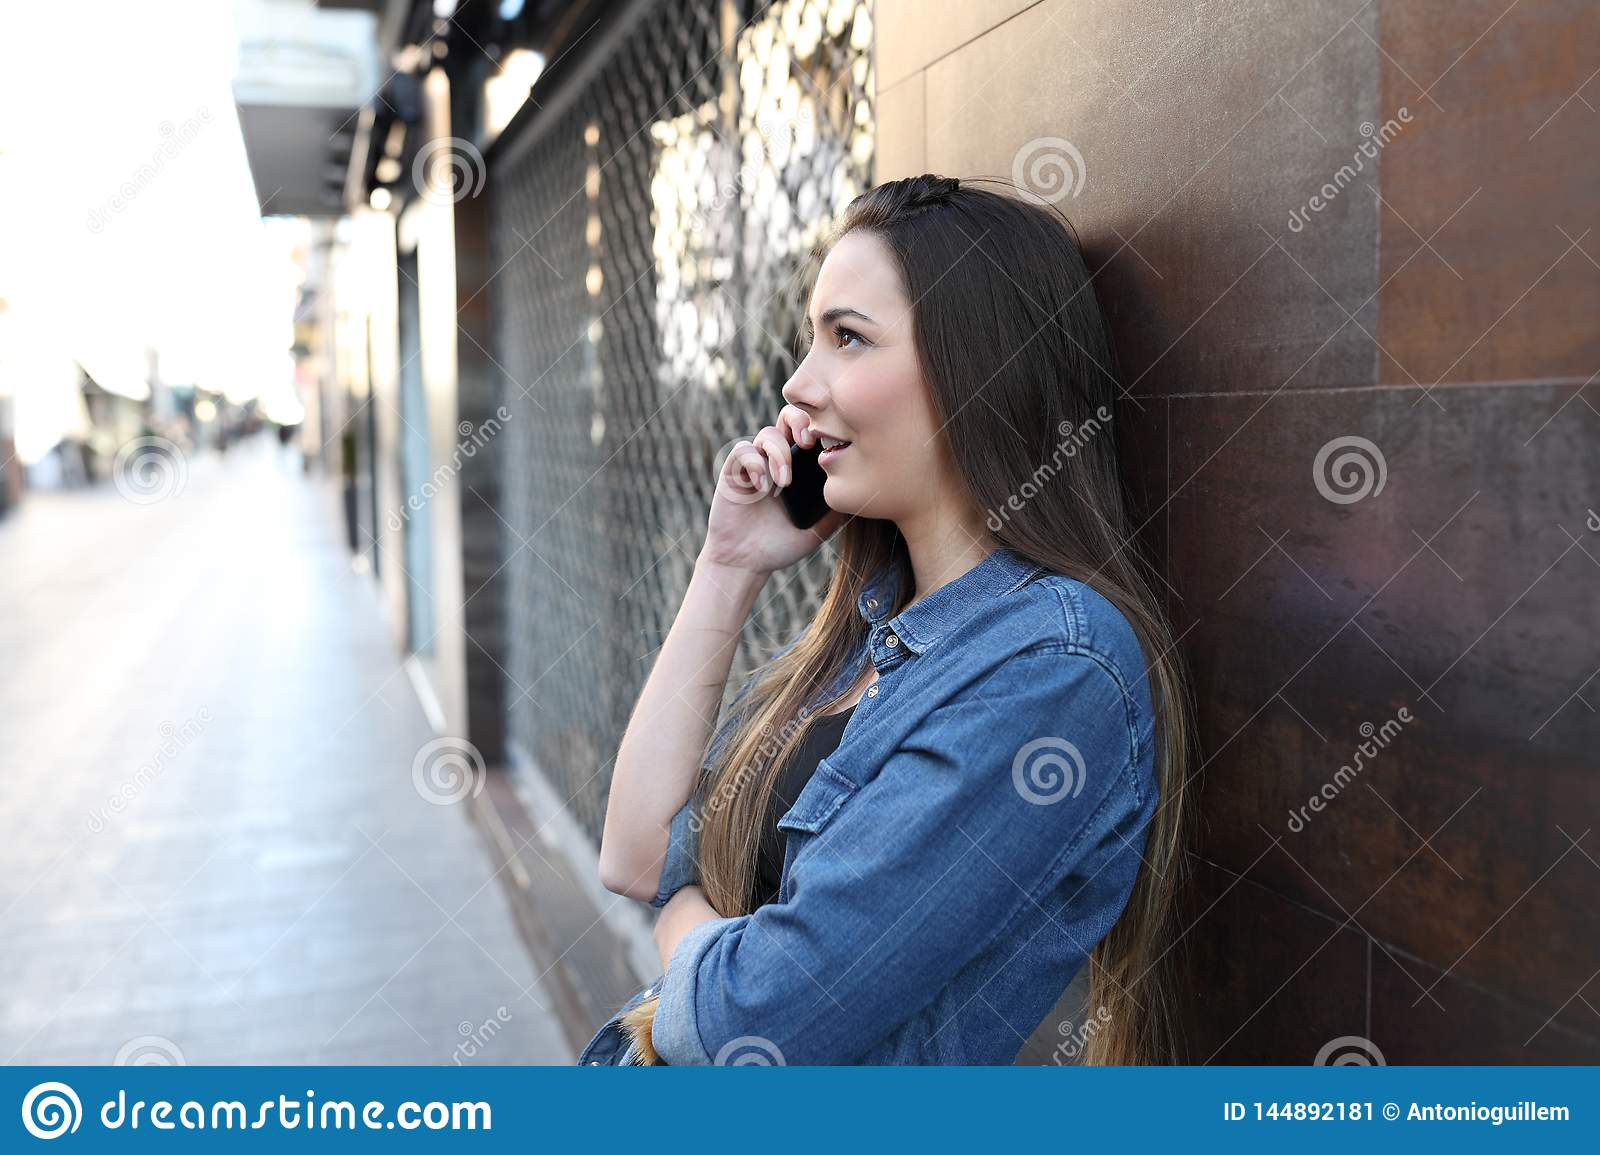 Serious girl profile talking on phone in the street